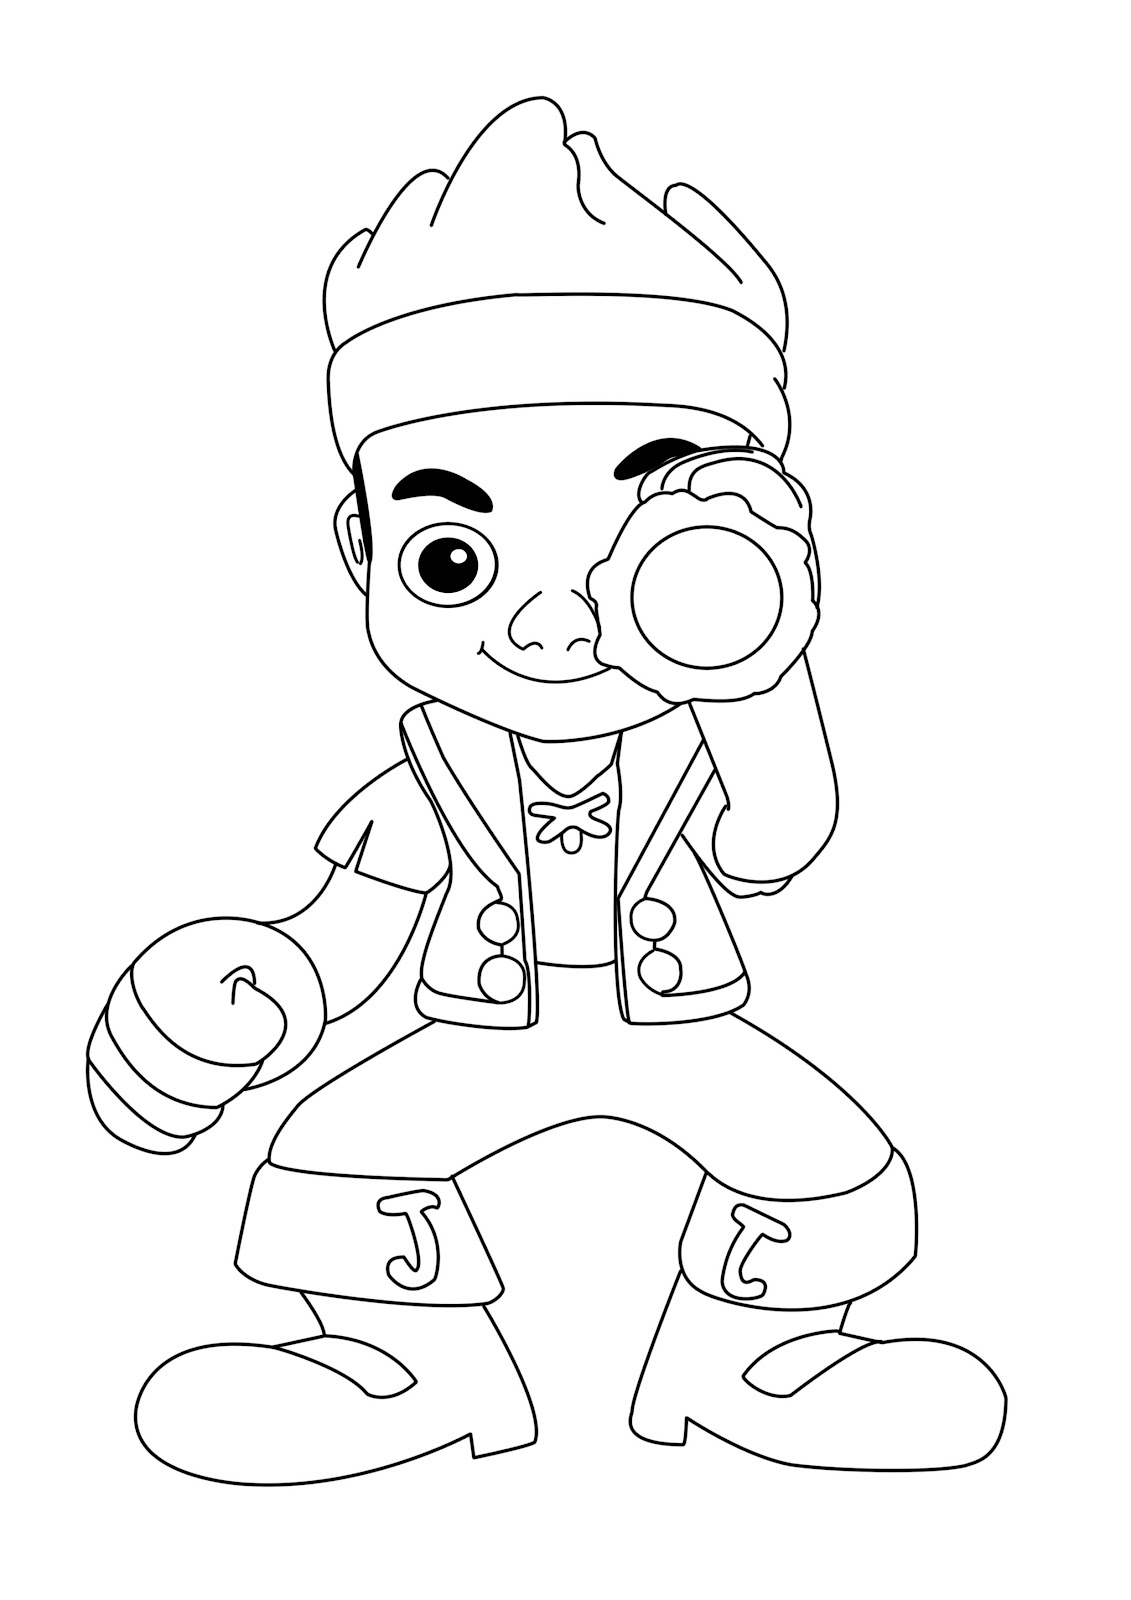 1131x1600 Excellent Jake And The Never Land Pirates Coloring Page From Jake